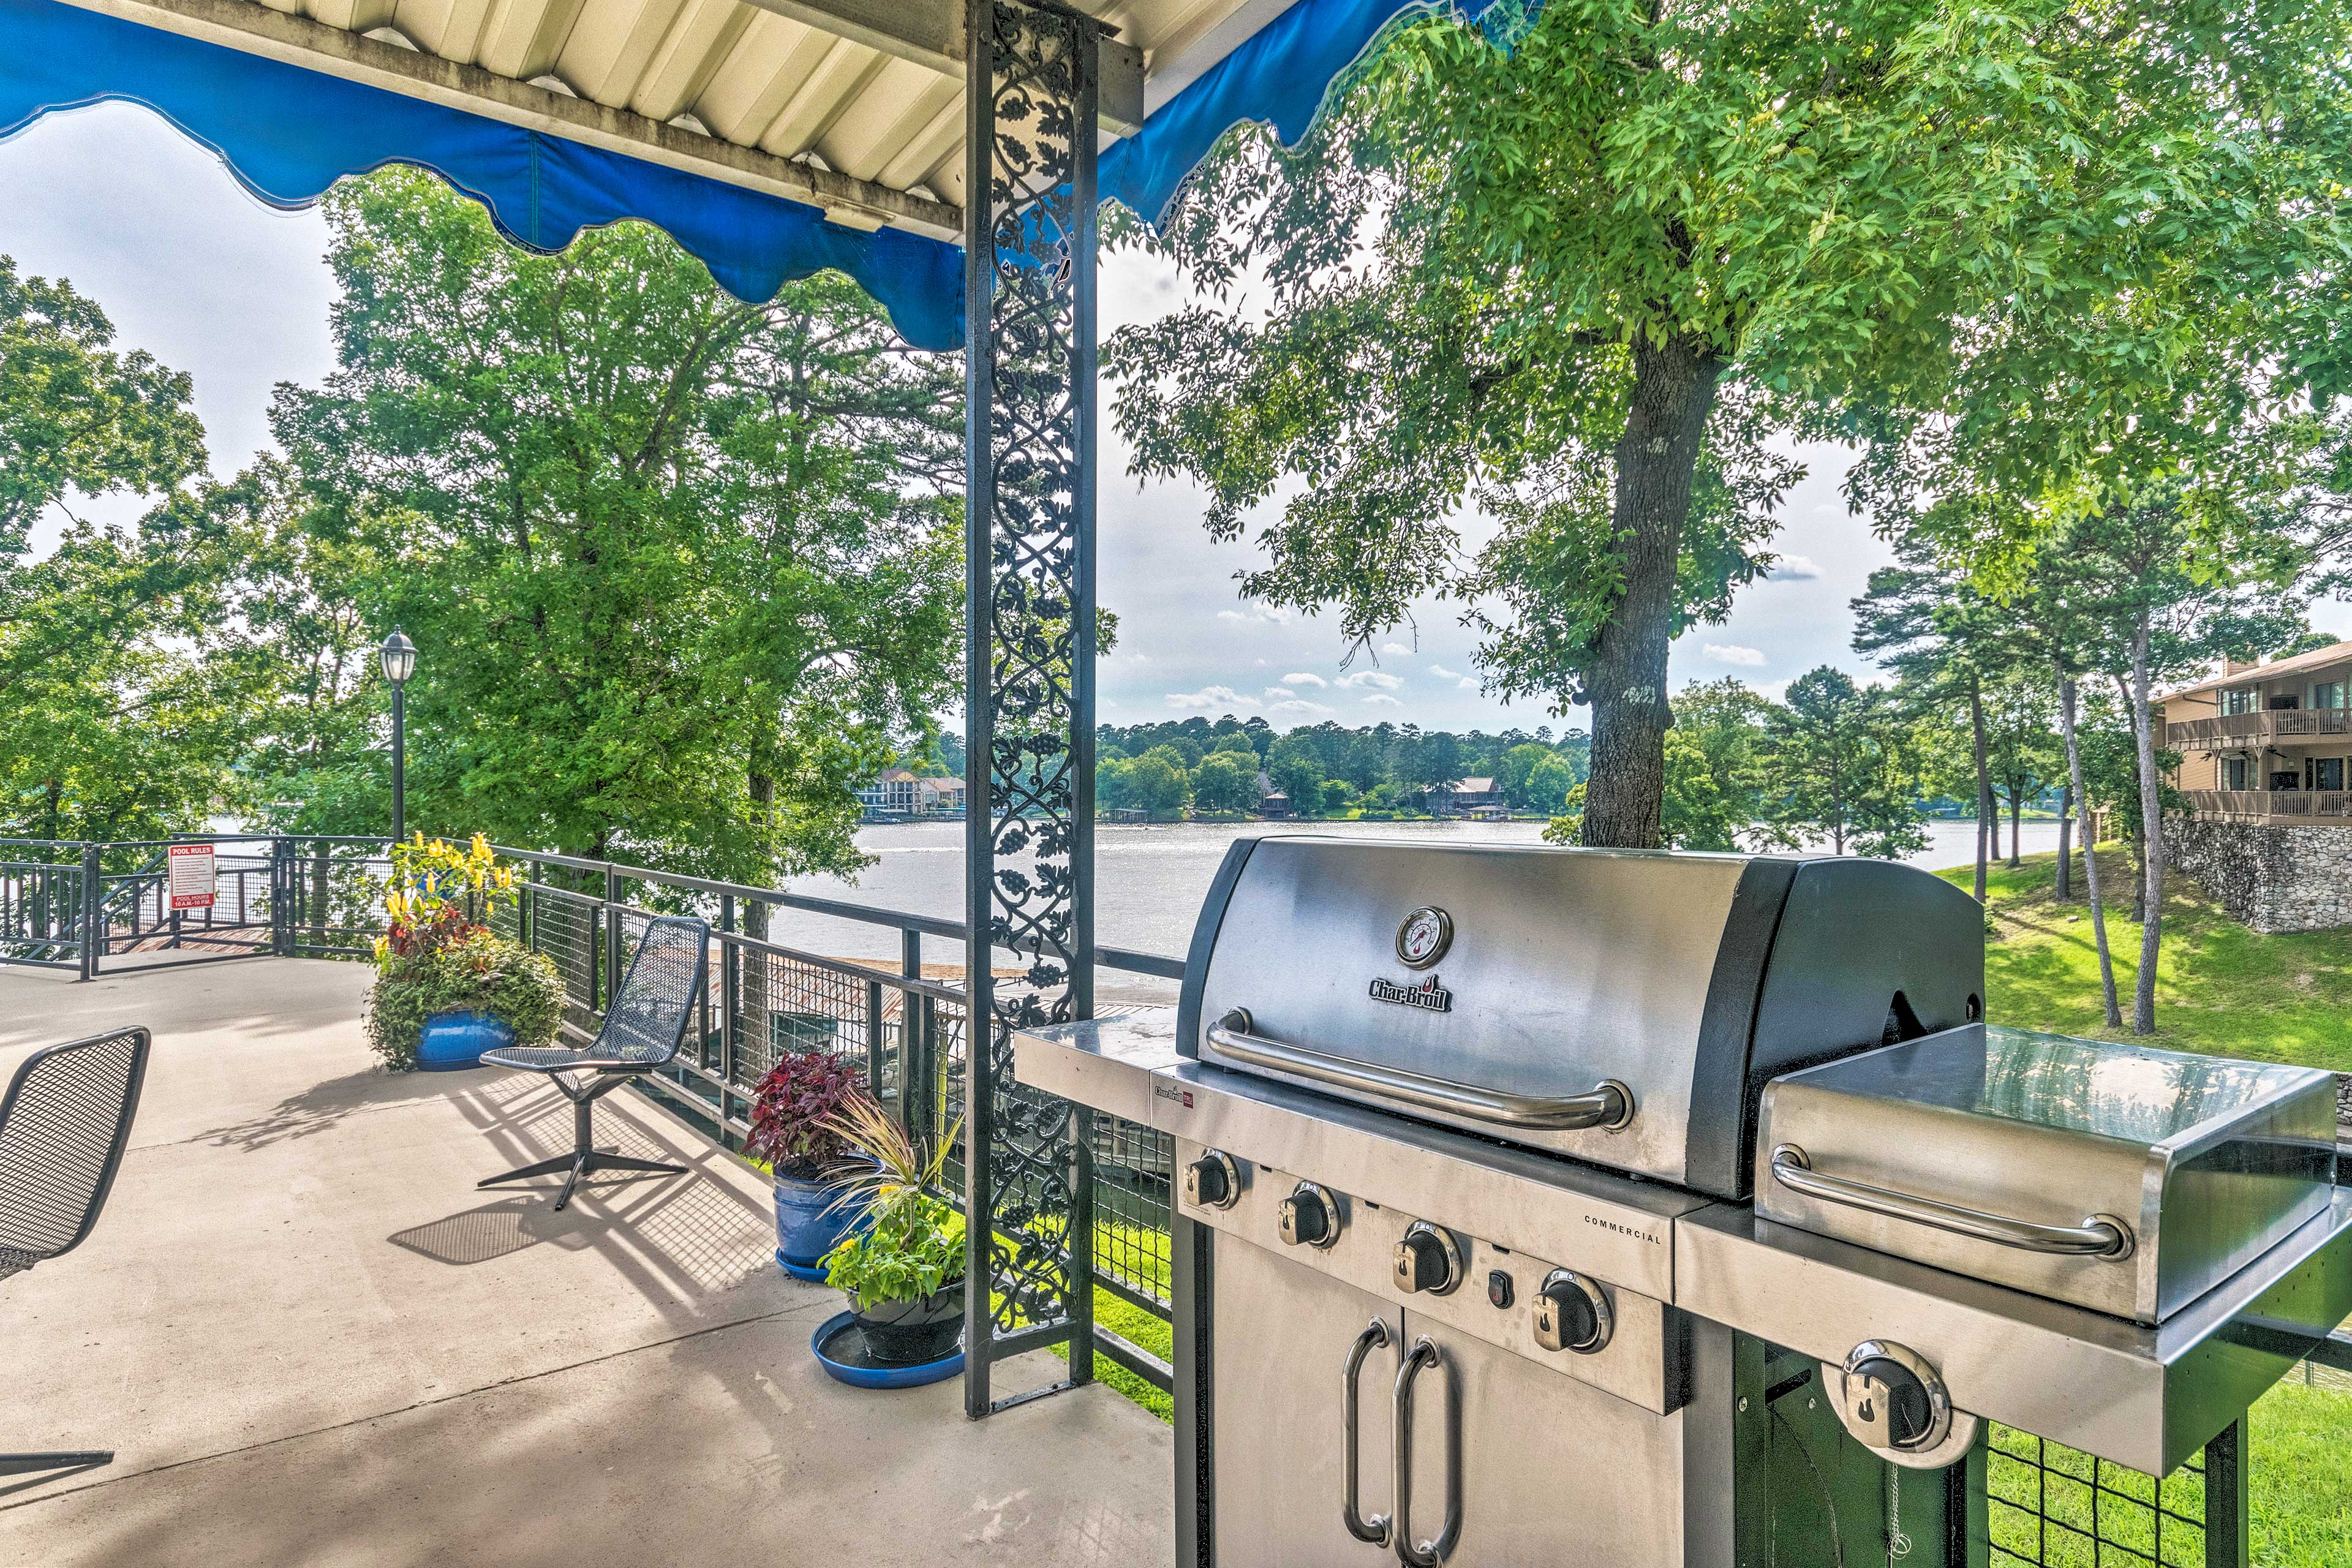 Enjoy lake views while tucked under an awning, protected from the sun.